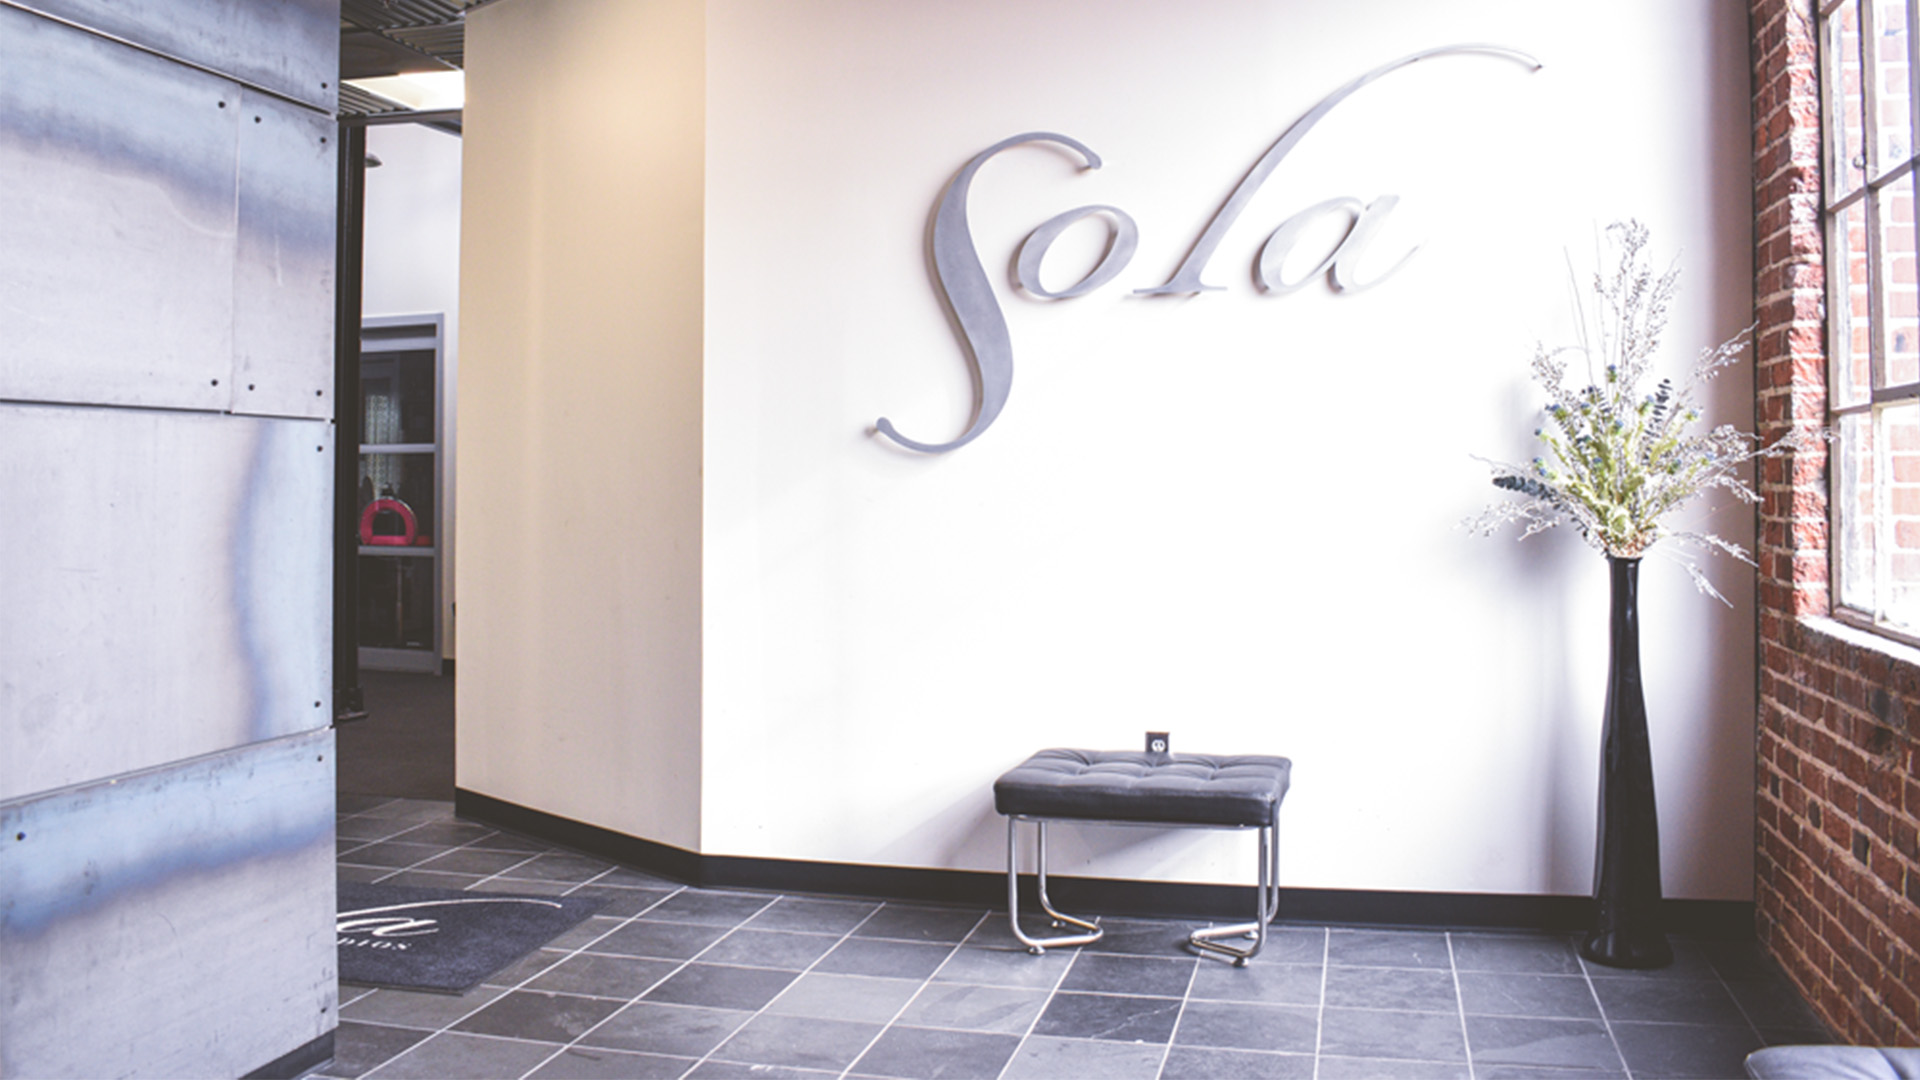 Sola-Salon at Atherton-Mill Lobby in Charlotte NC